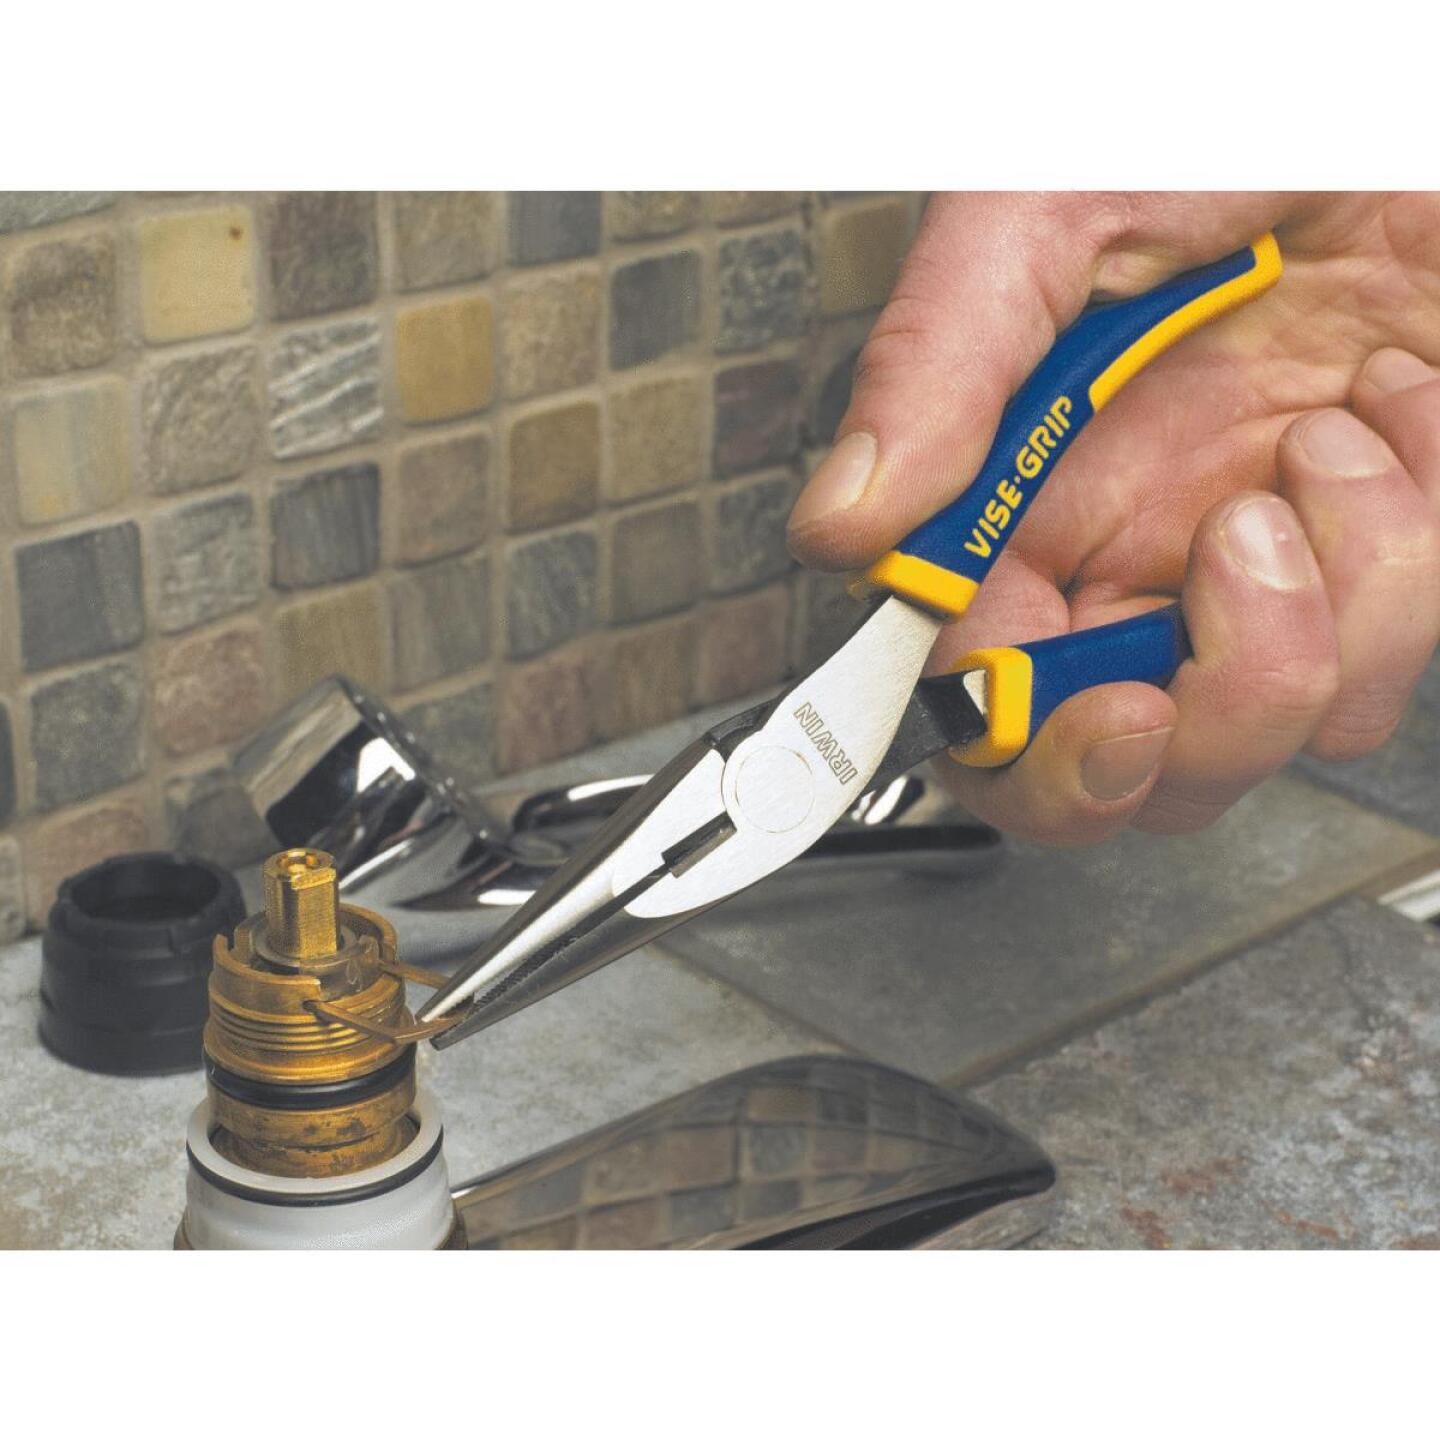 Irwin Vise-Grip 6 In. Long Nose Pliers Image 2